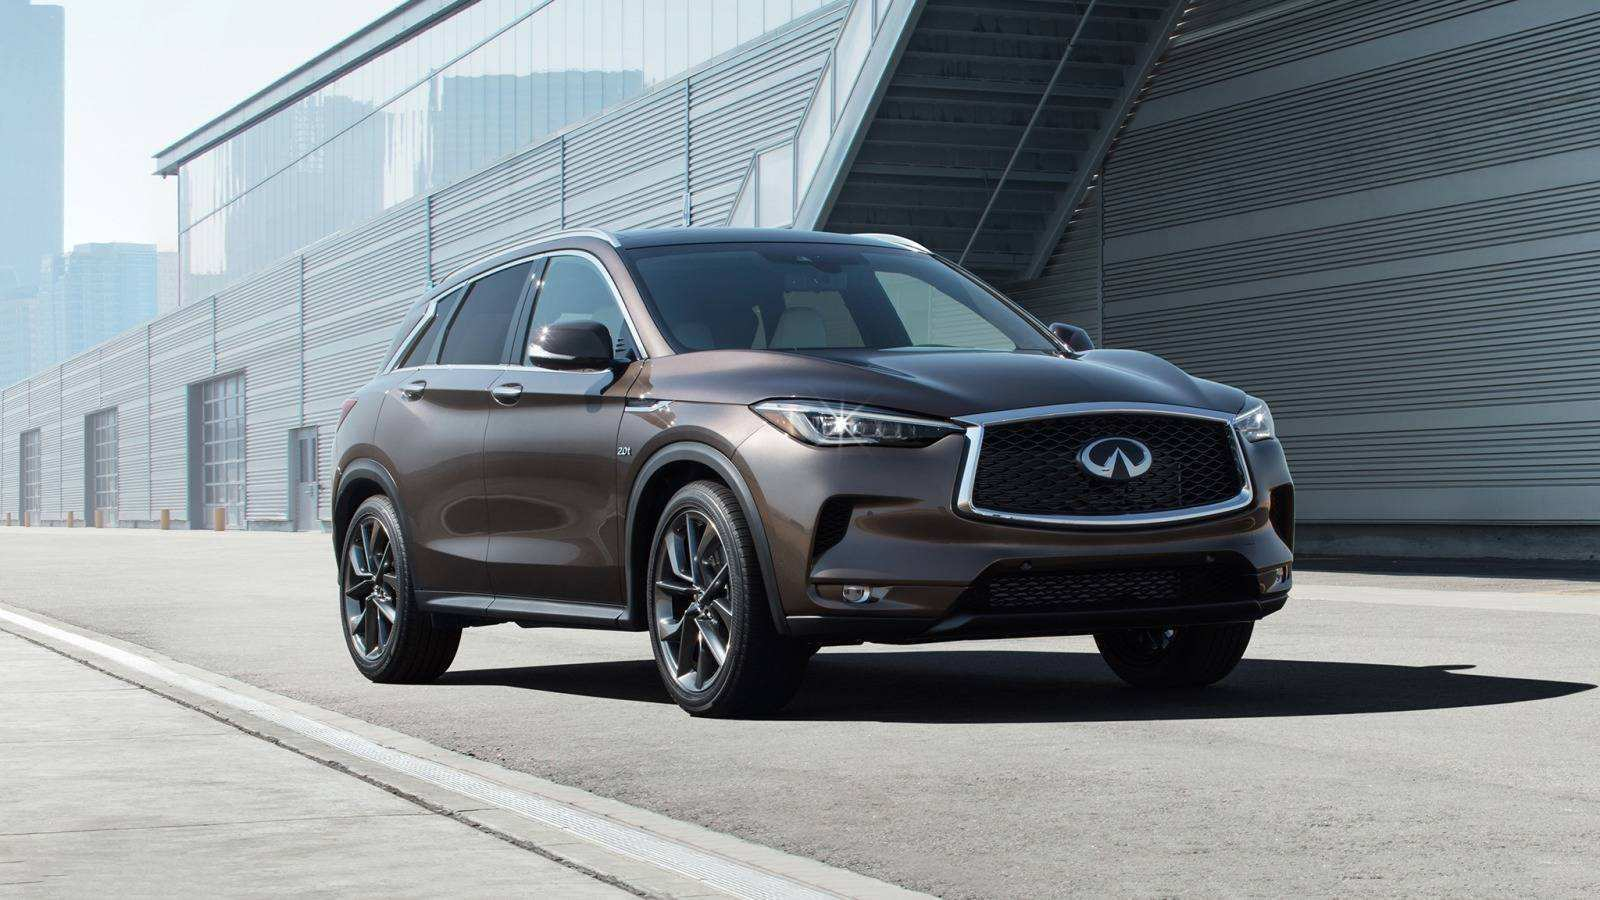 37 New The Infiniti Qx50 2019 Trunk Specs And Review Performance and New Engine with The Infiniti Qx50 2019 Trunk Specs And Review